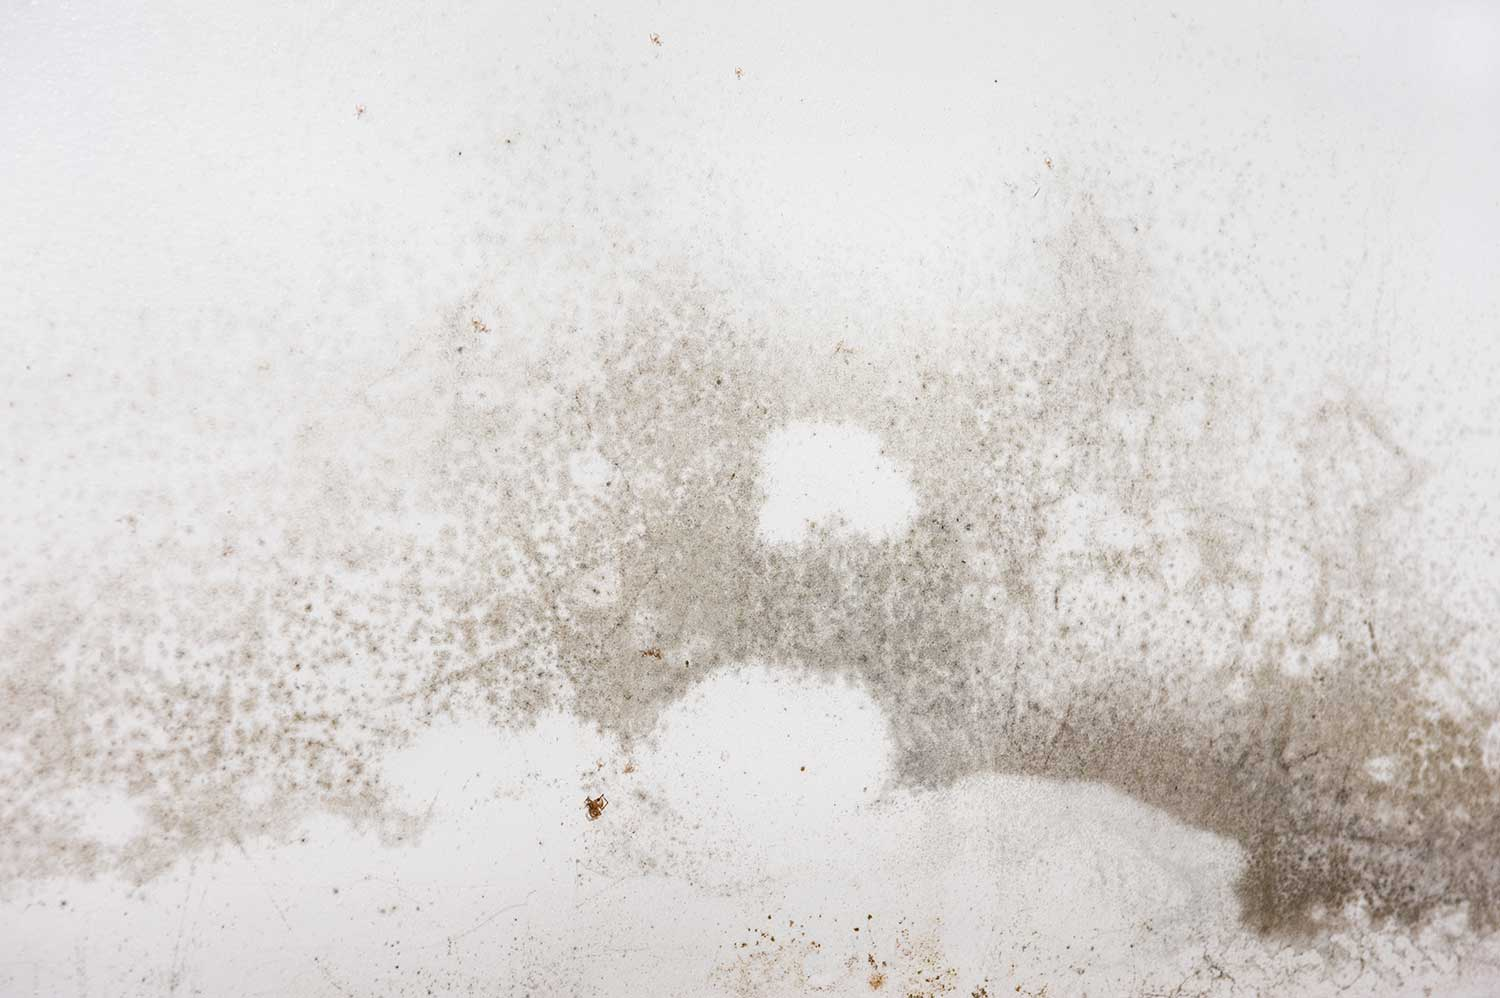 Mold on the walls and baseboard trim in the basement of a home from water leaking